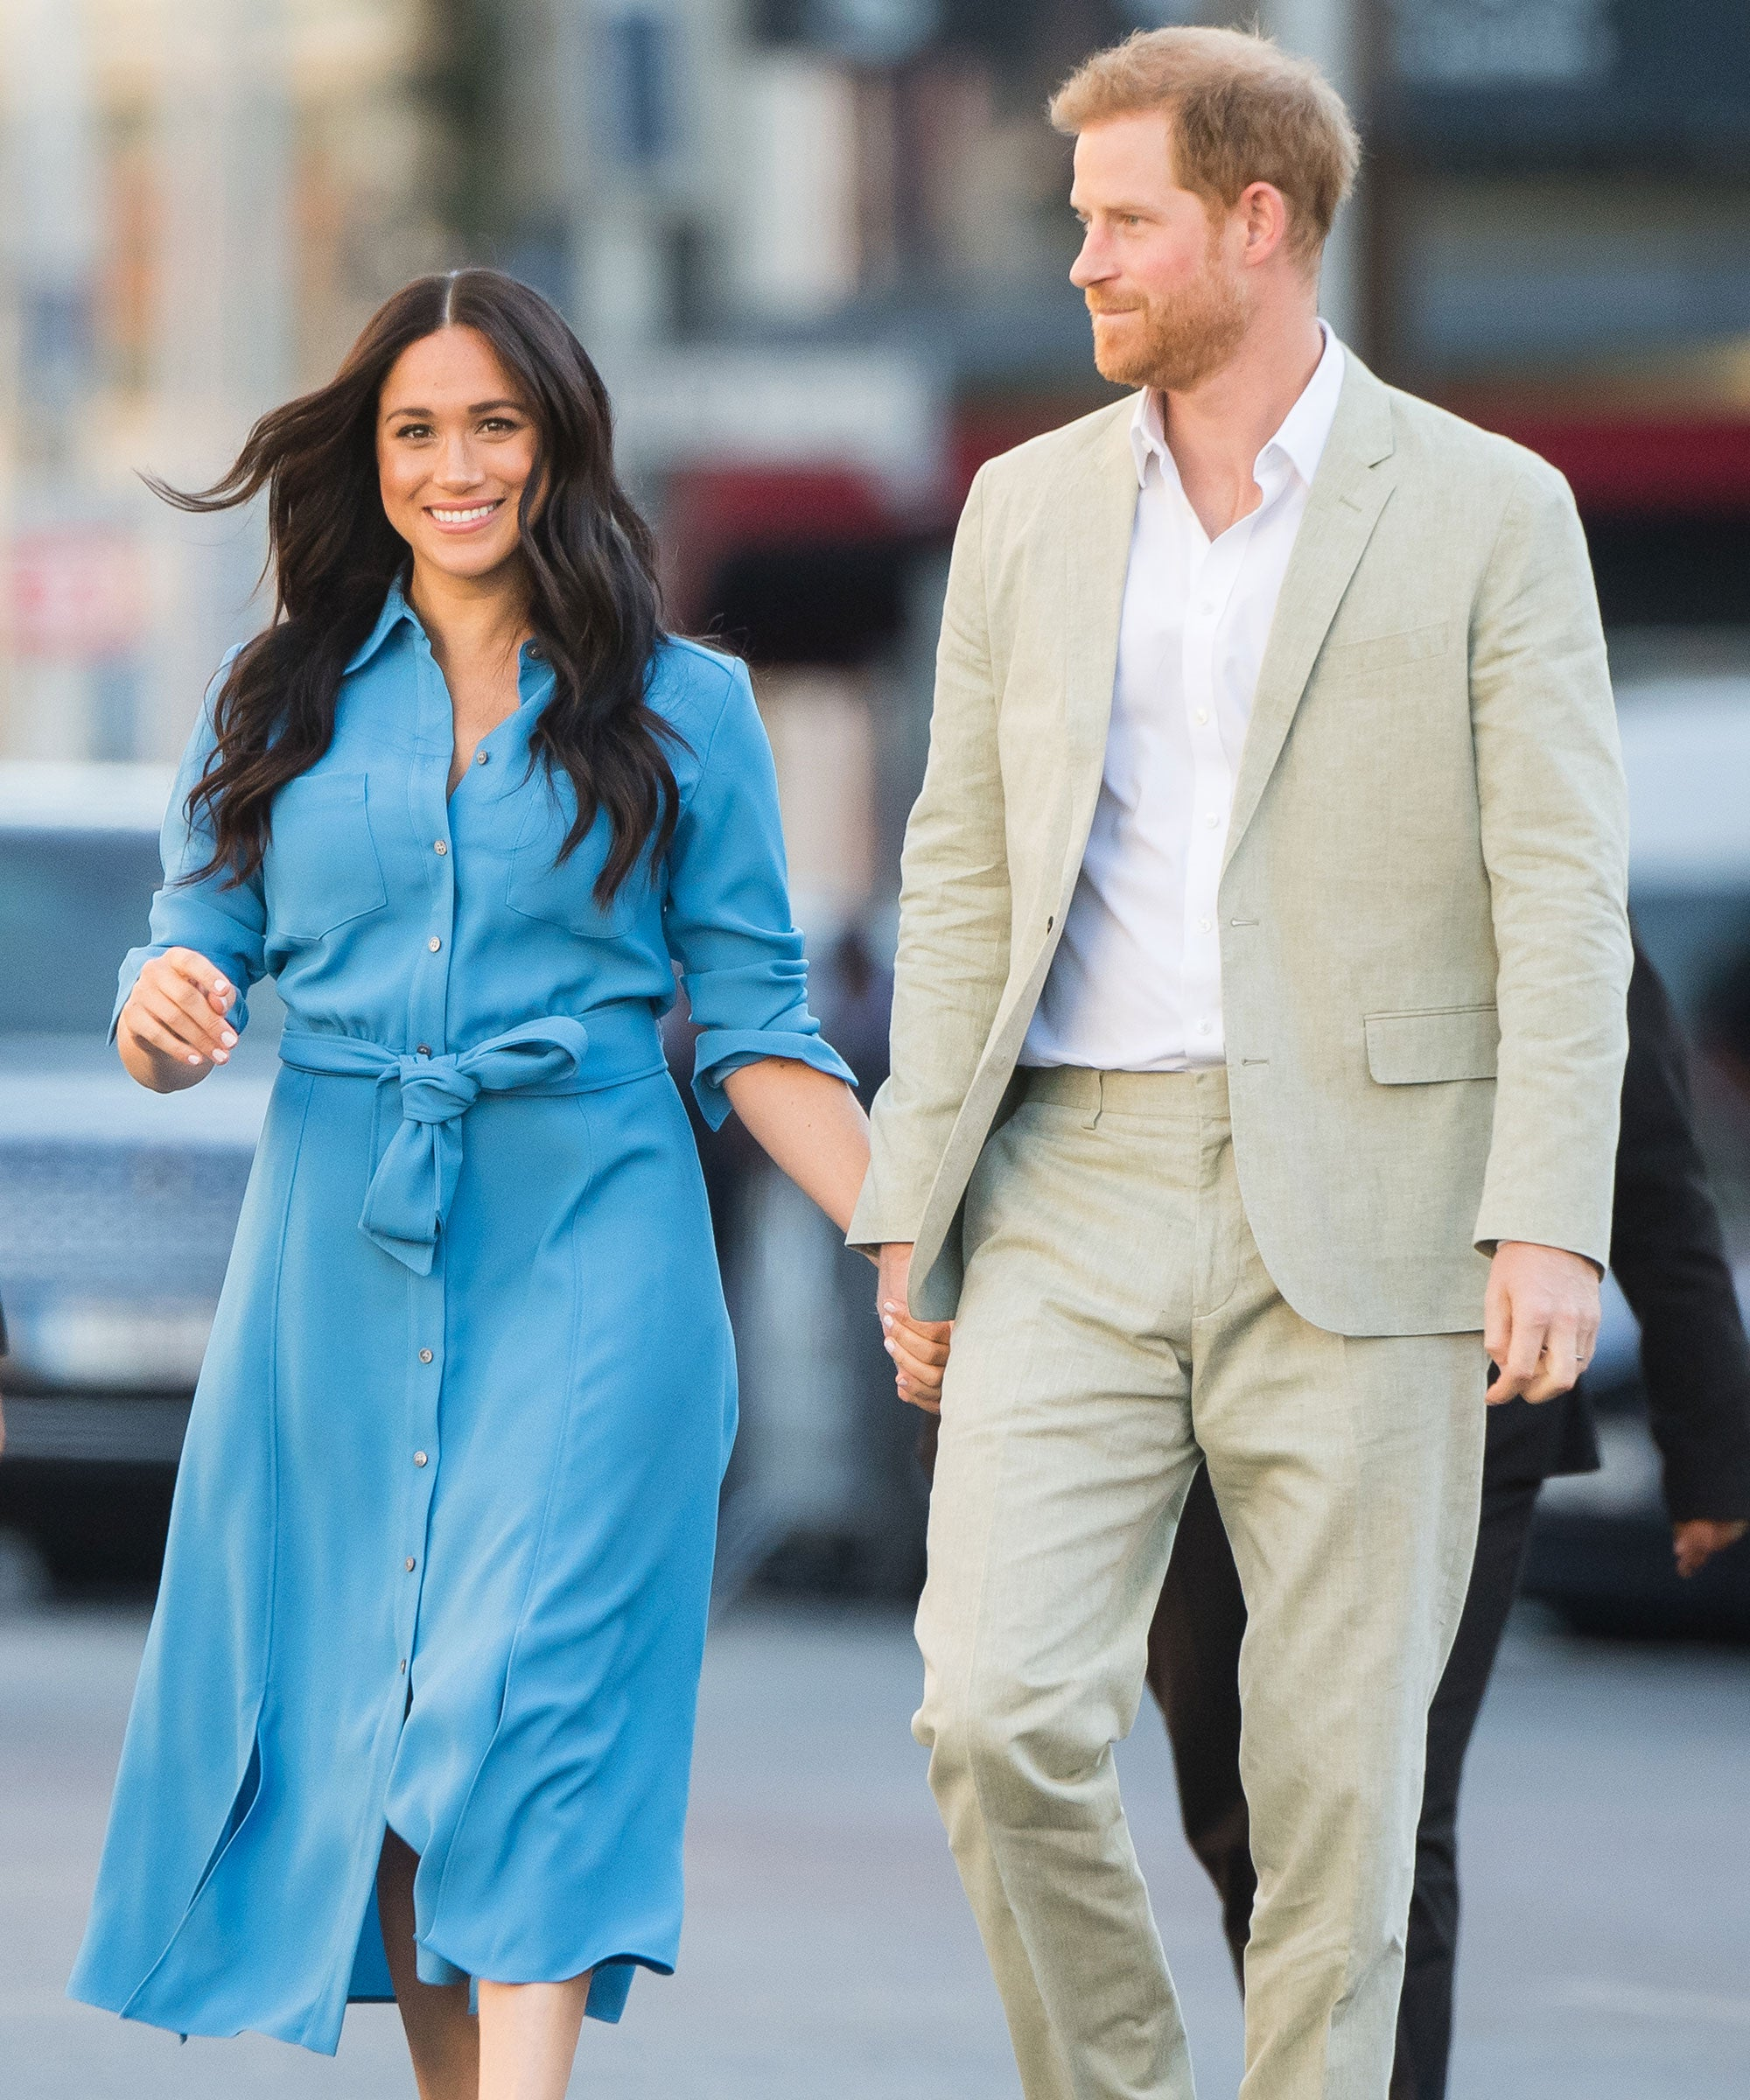 Will Prince Harry & Meghan Markle Pop Up In Your Netflix Queue? It's A Possibility